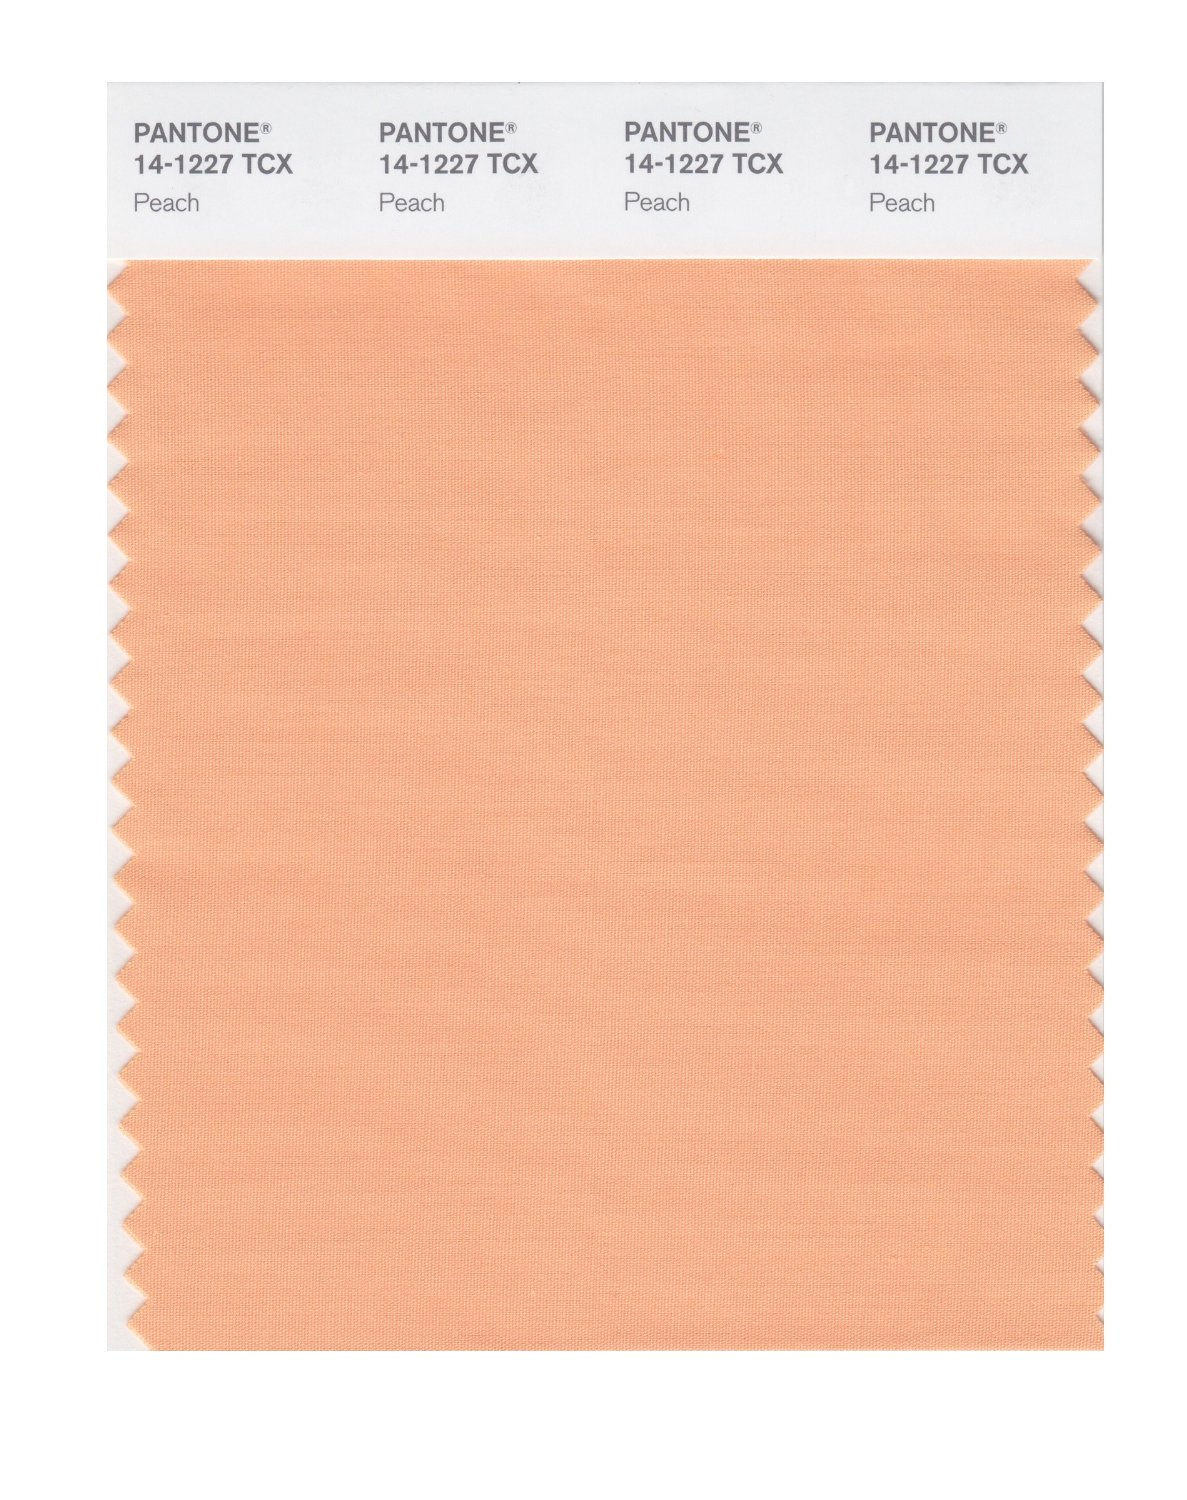 BUY Pantone Smart Swatch 14-1227 Peach: www.hyatts.com/pantone/pantone-smart-swatch-14-1227-peach-141227